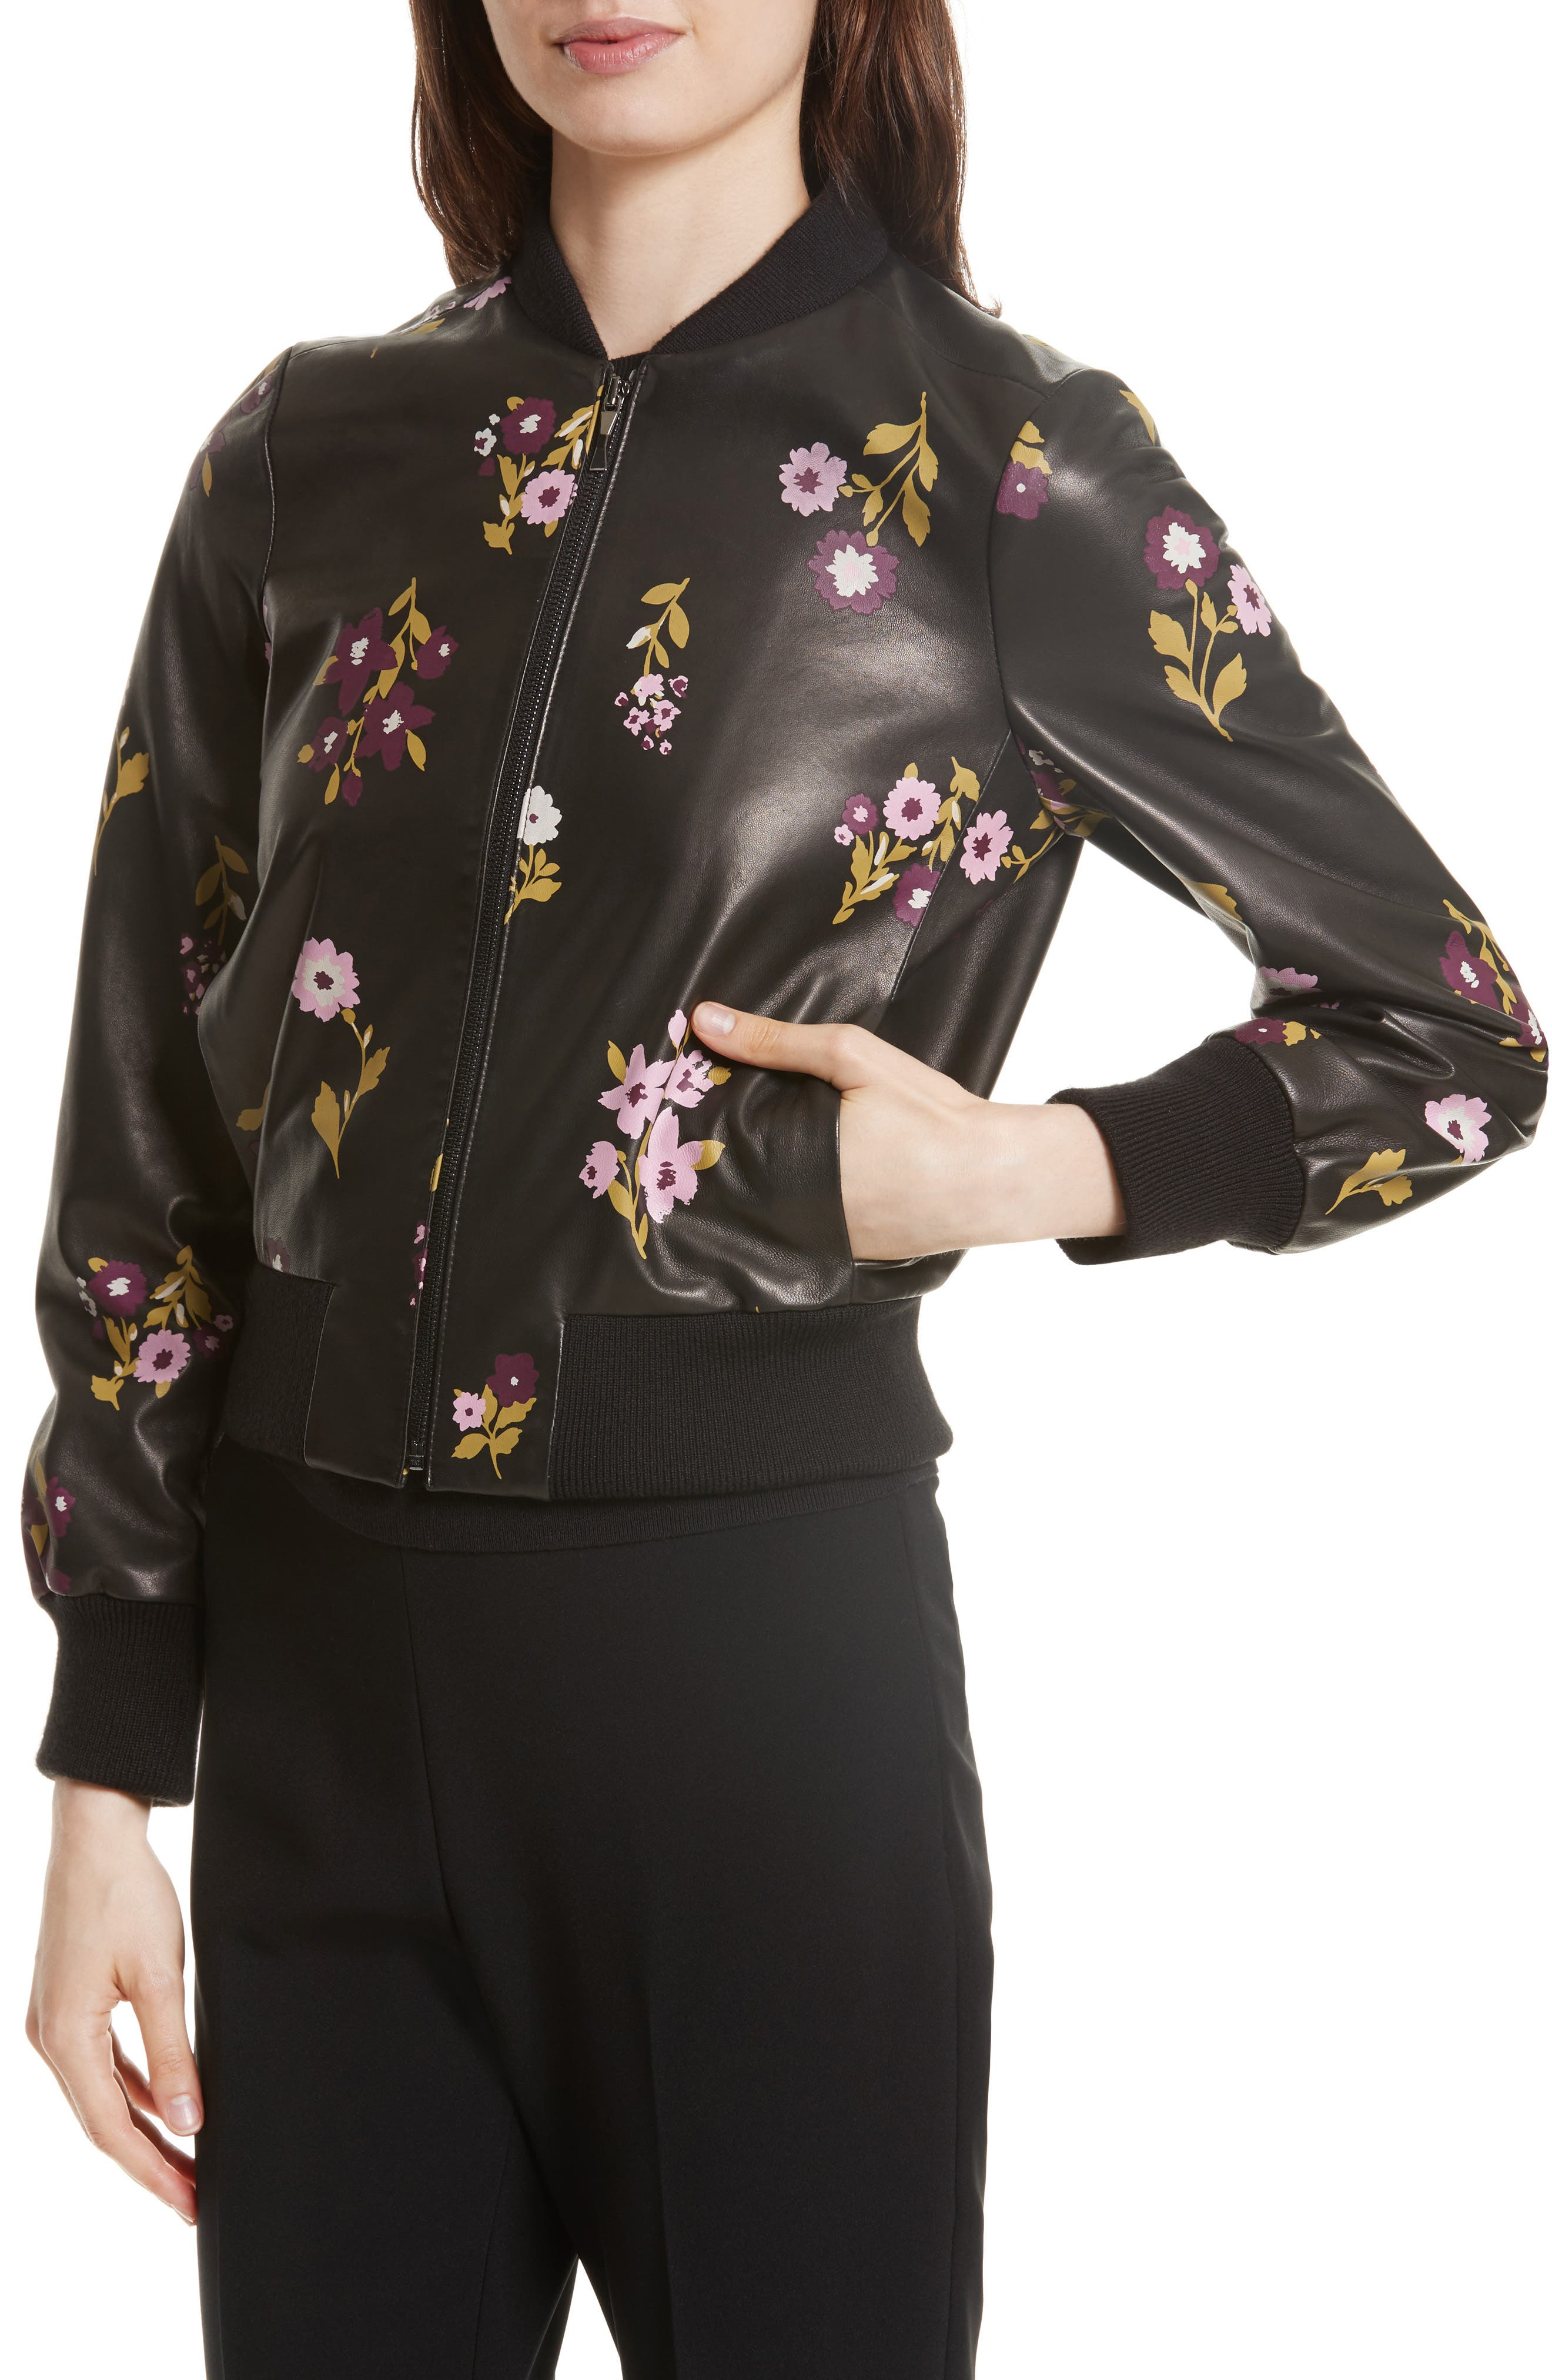 in bloom leather bomber jacket,                             Alternate thumbnail 4, color,                             006